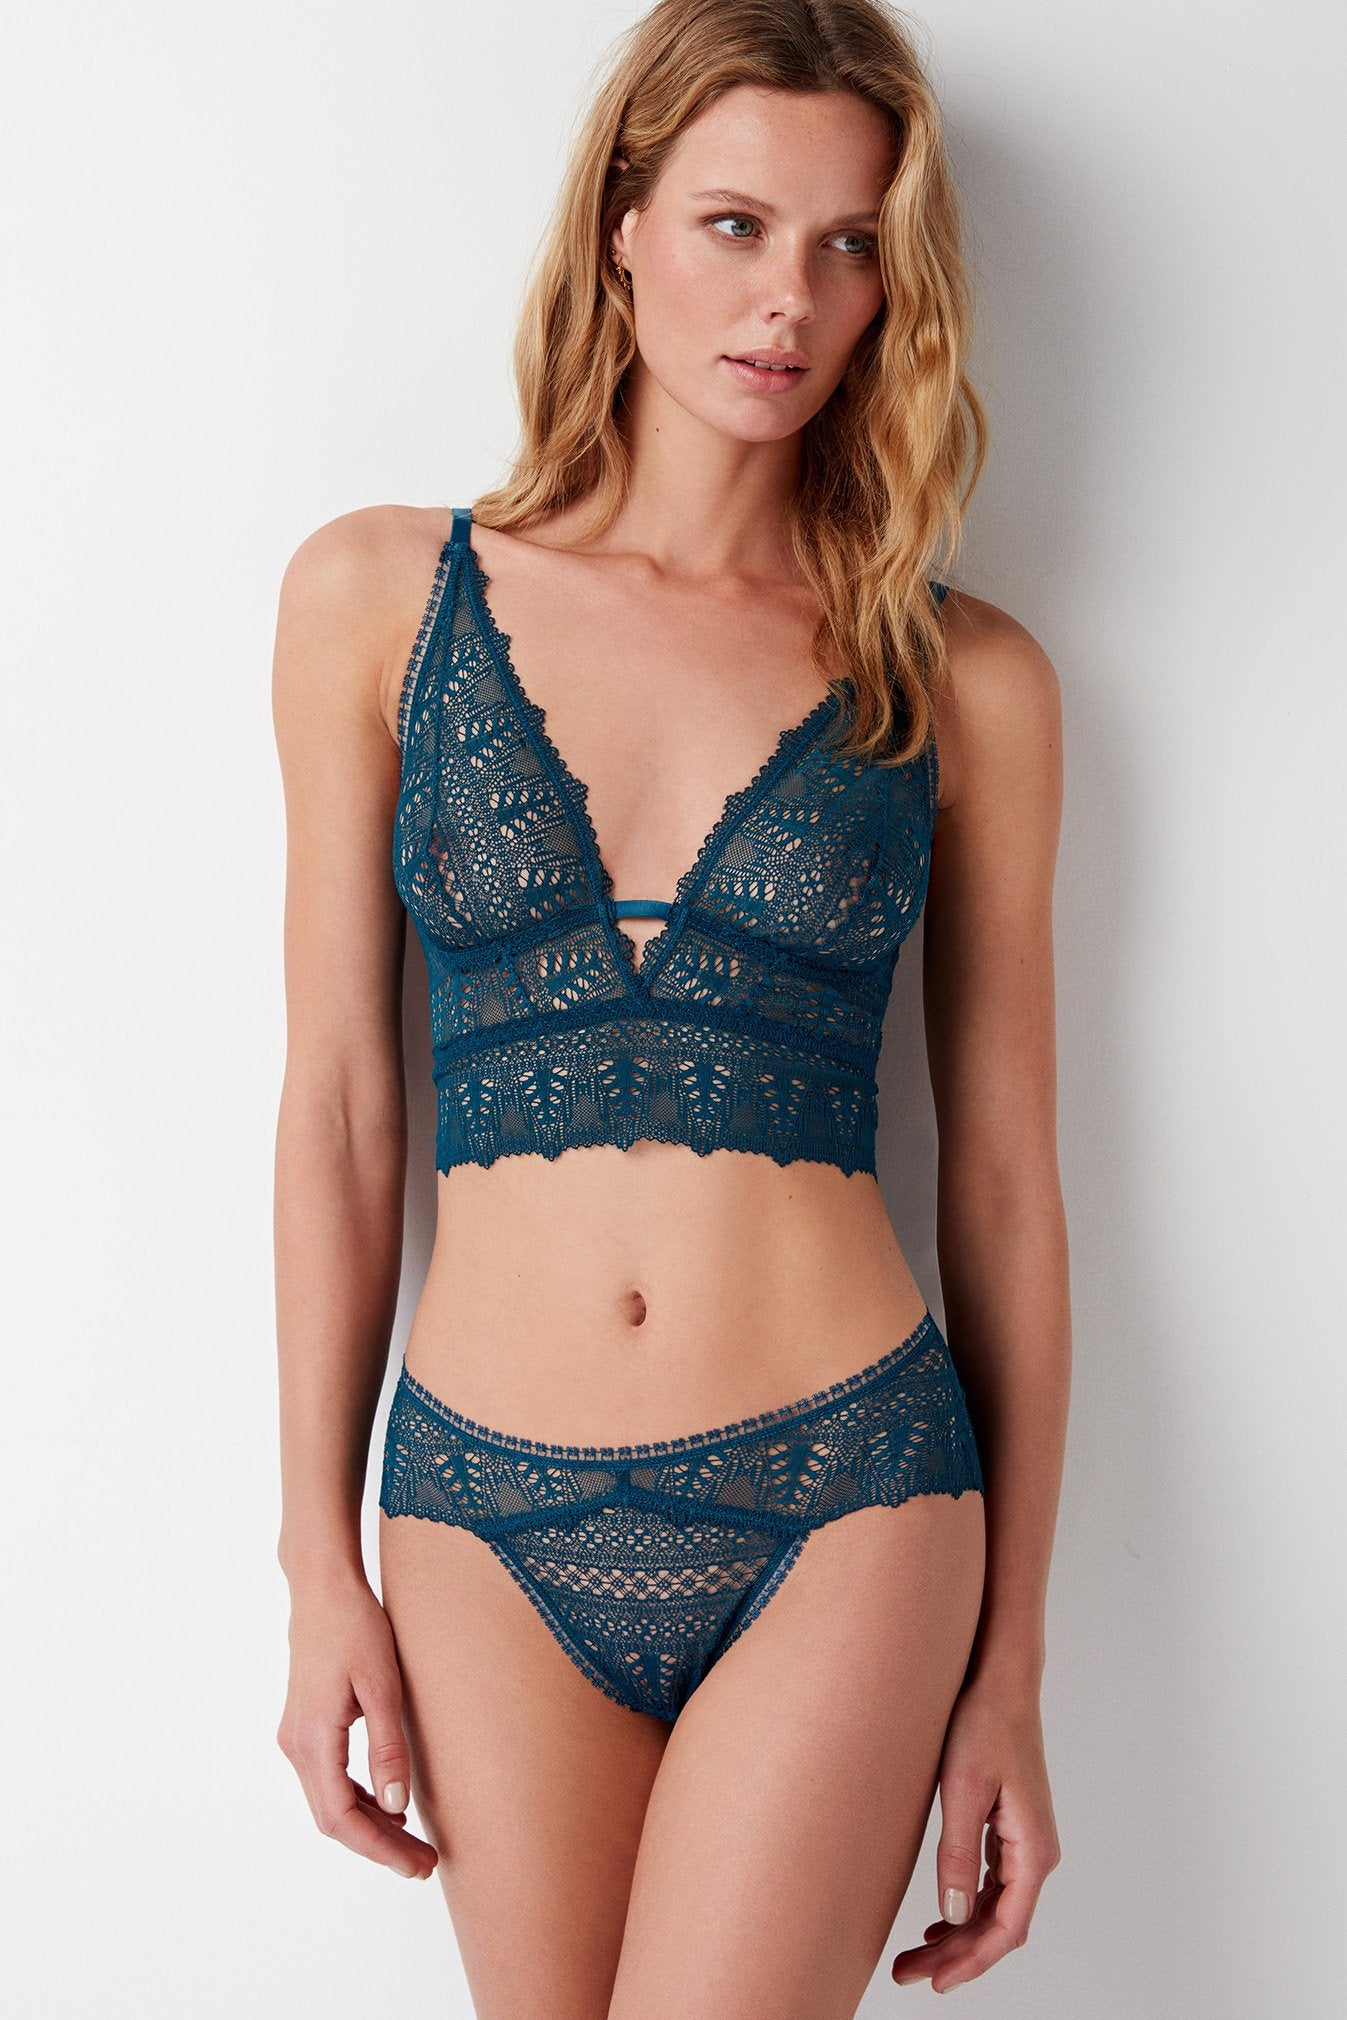 Else Lingerie Ivy Lace Cup Brief